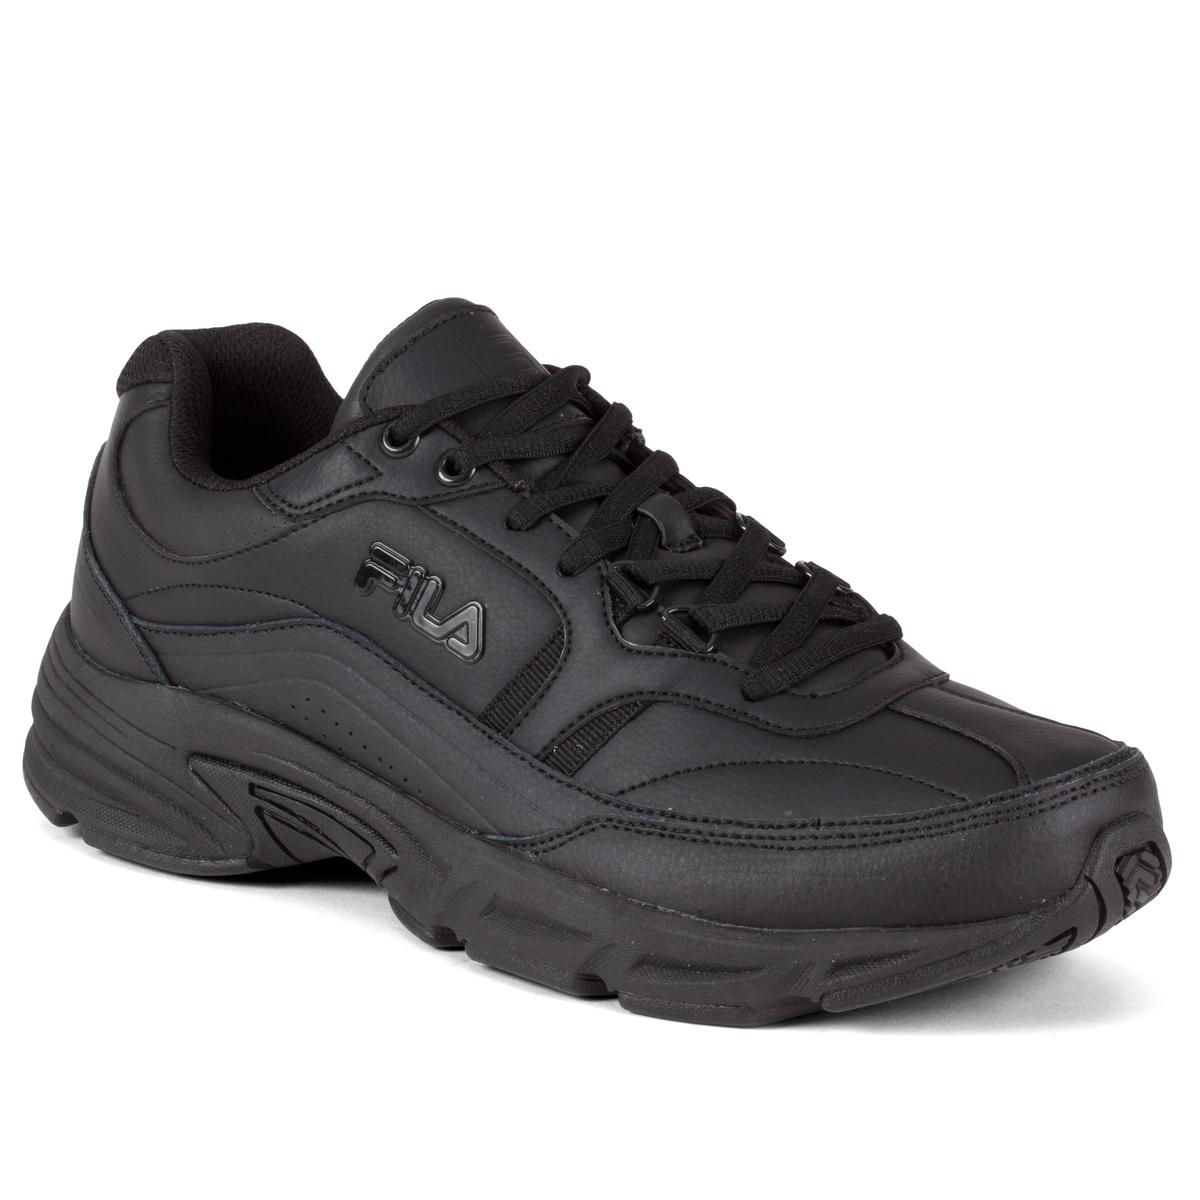 Women's Fila, Workshift Memory foam wide work Shoes by Fila